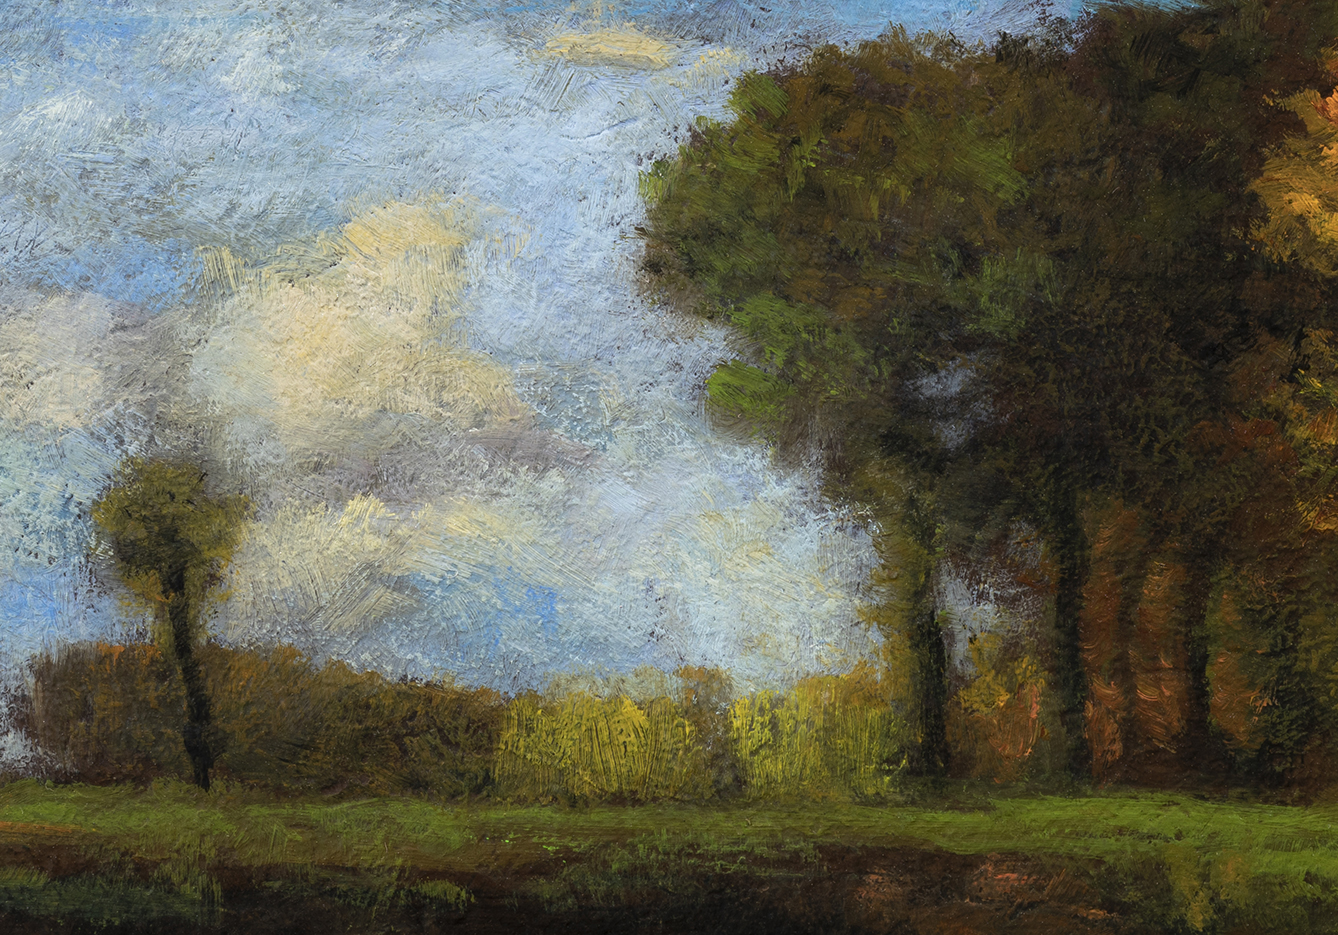 Study after: George Inness Spirit of Autumn by M Francis McCarthy - 7x10 (Detail)